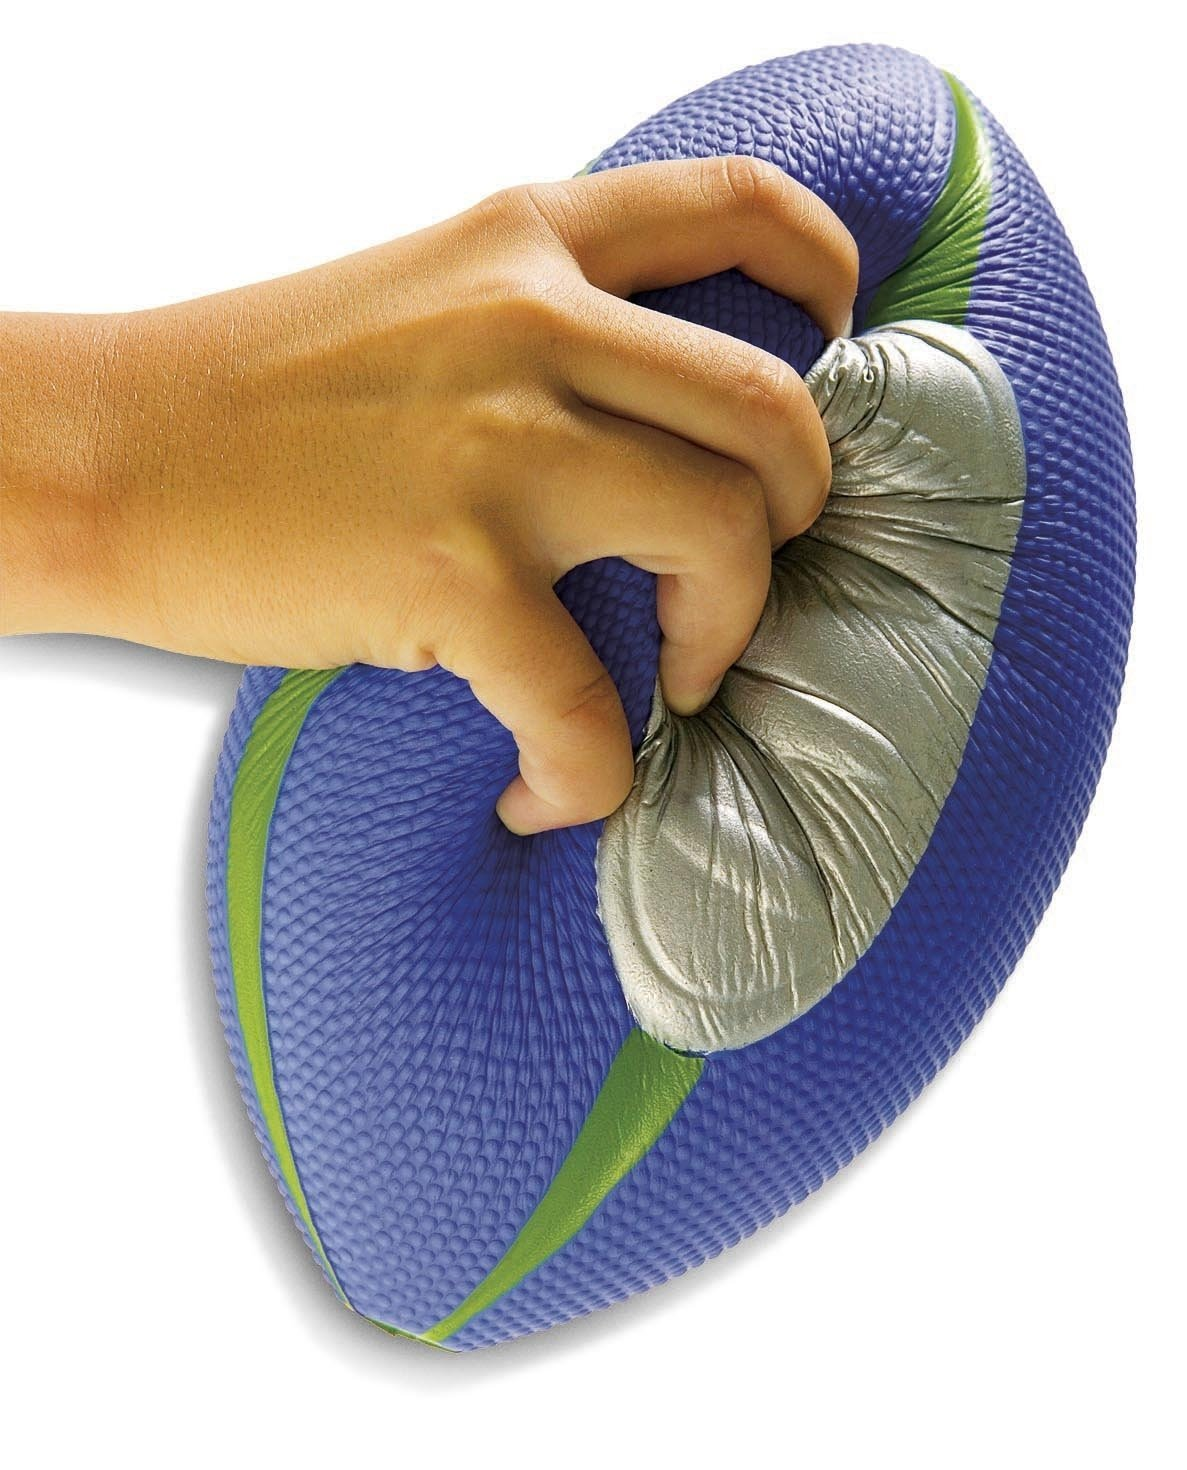 Diggin Squish Soft Kids Football. Easy Grip Foam Ball. Outdoor Indoor Sports Toy by Diggin